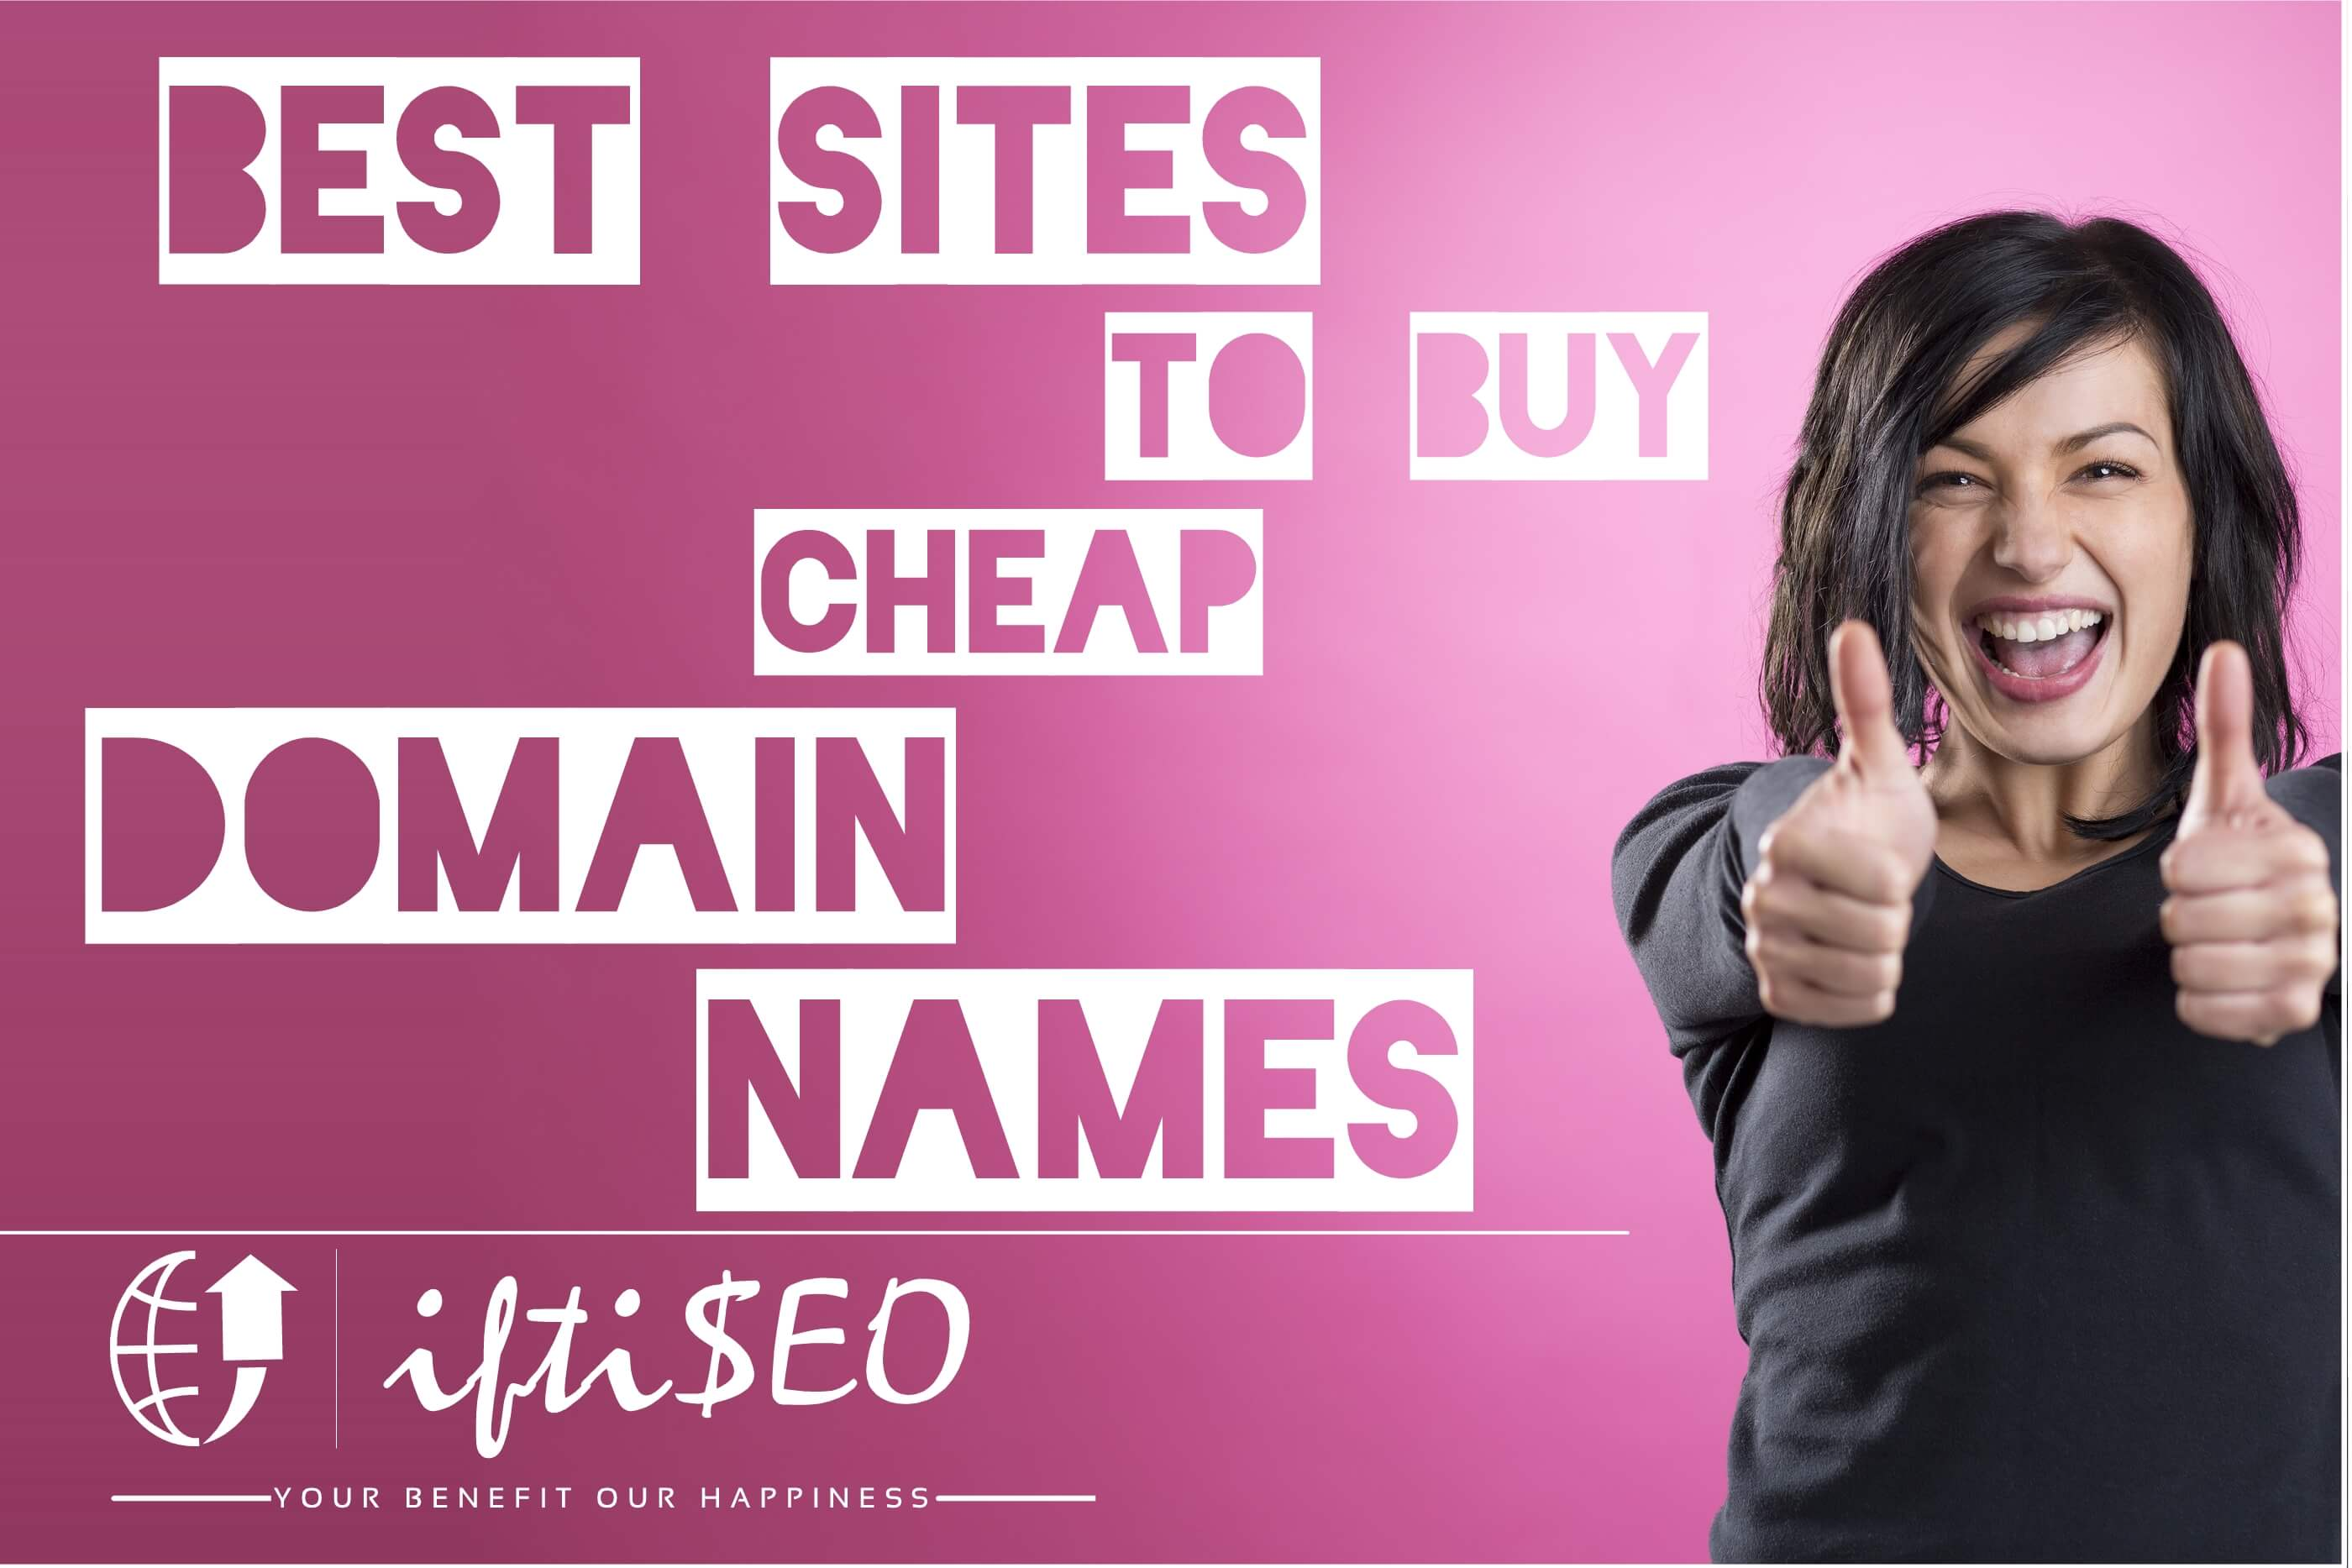 Best Sites to Buy Cheap Domain Names